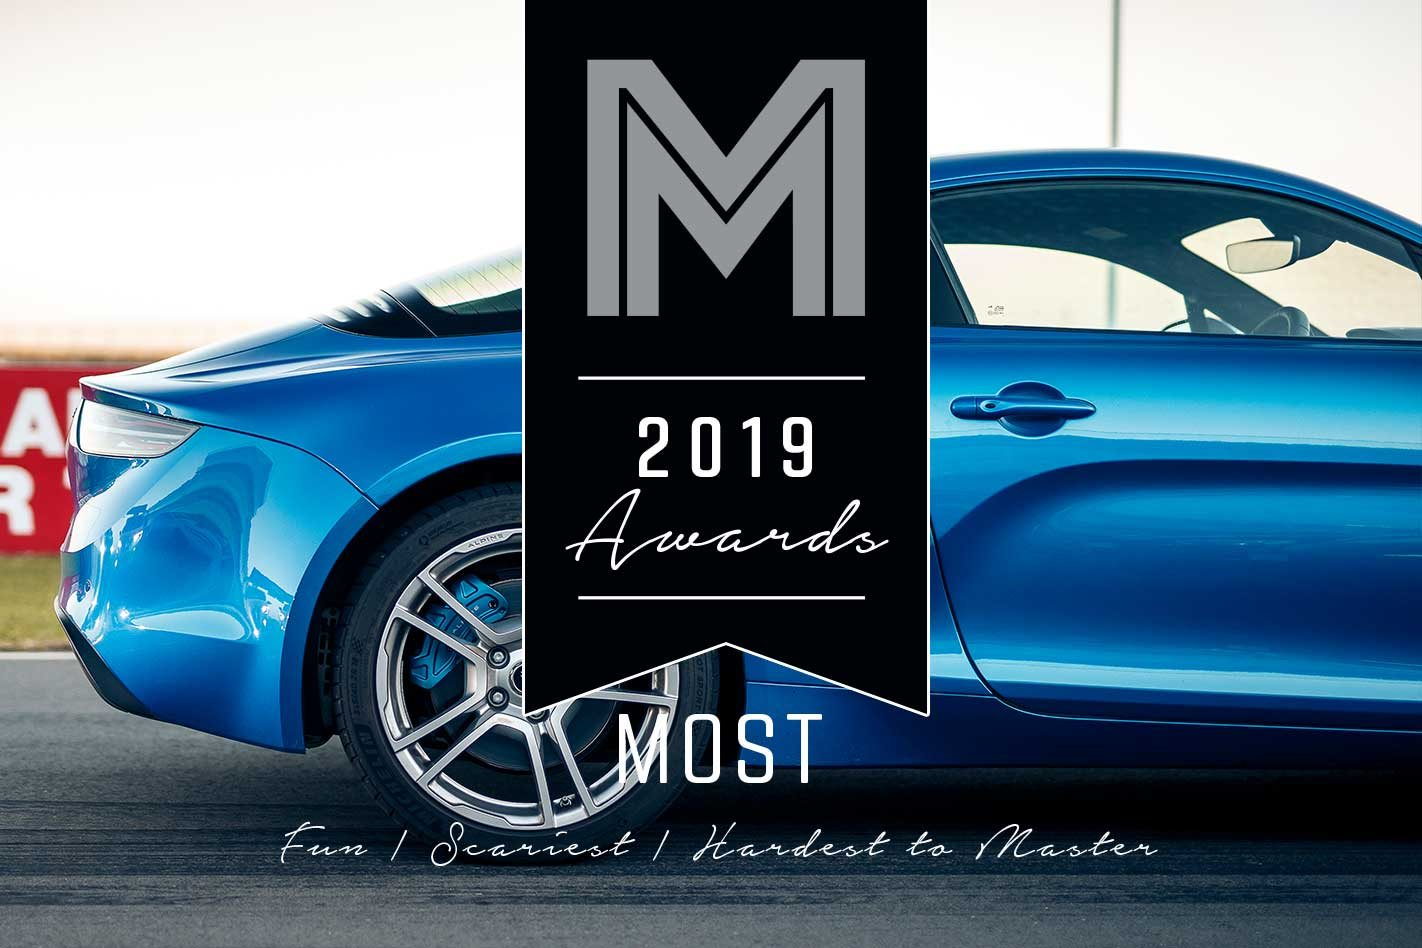 2019 MOTOR Awards: Most Fun, Scariest, and Hardest to Master